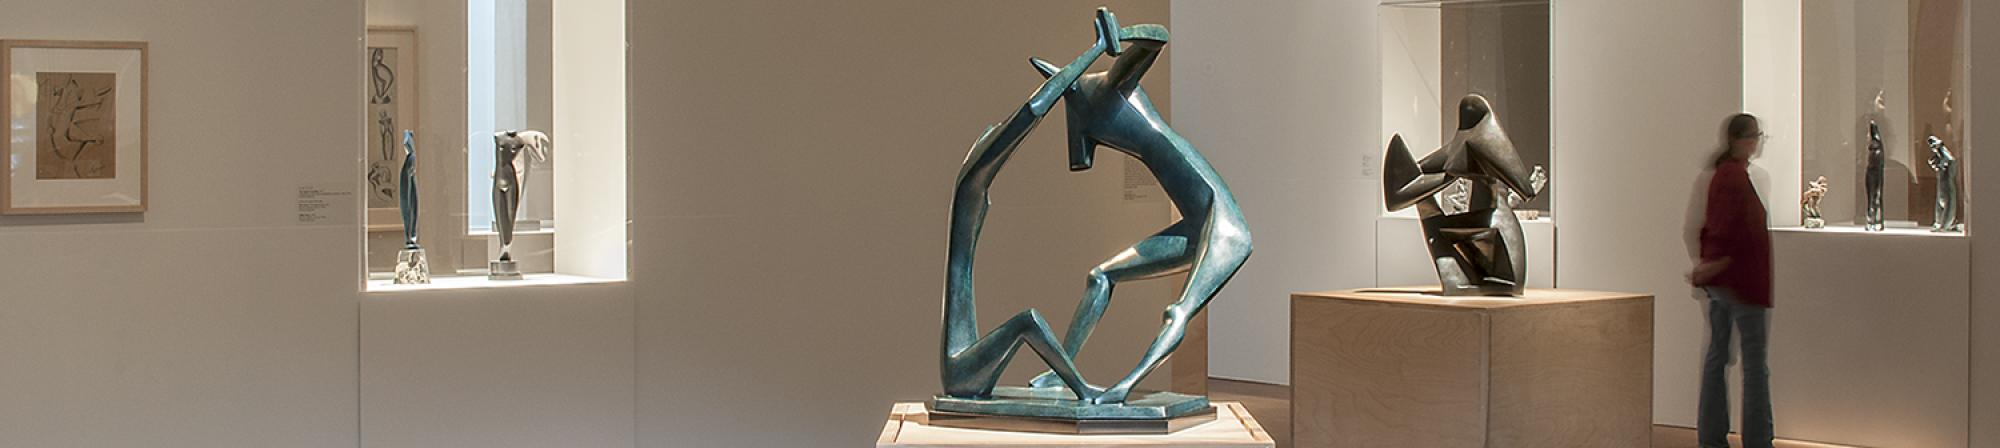 View of Archipenko traveling exhibition in Faulconer Gallery